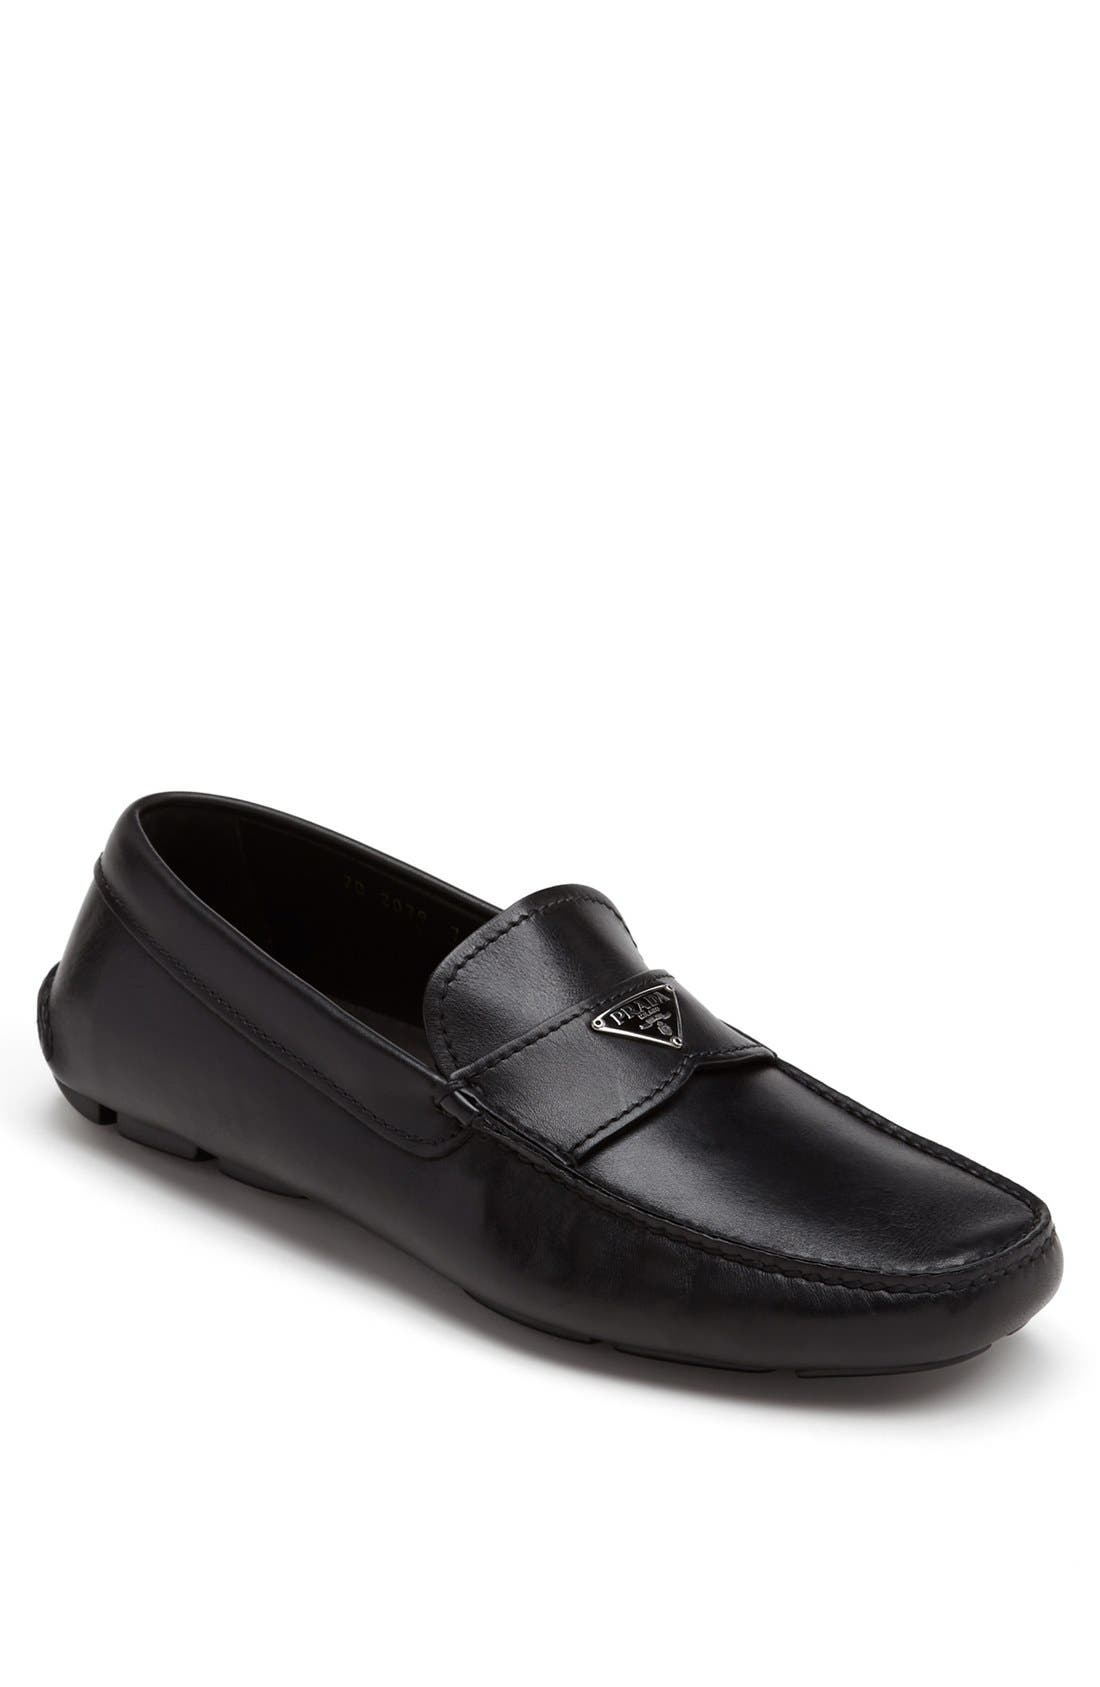 Main Image - Prada Logo Bit Driving Shoe (Men)